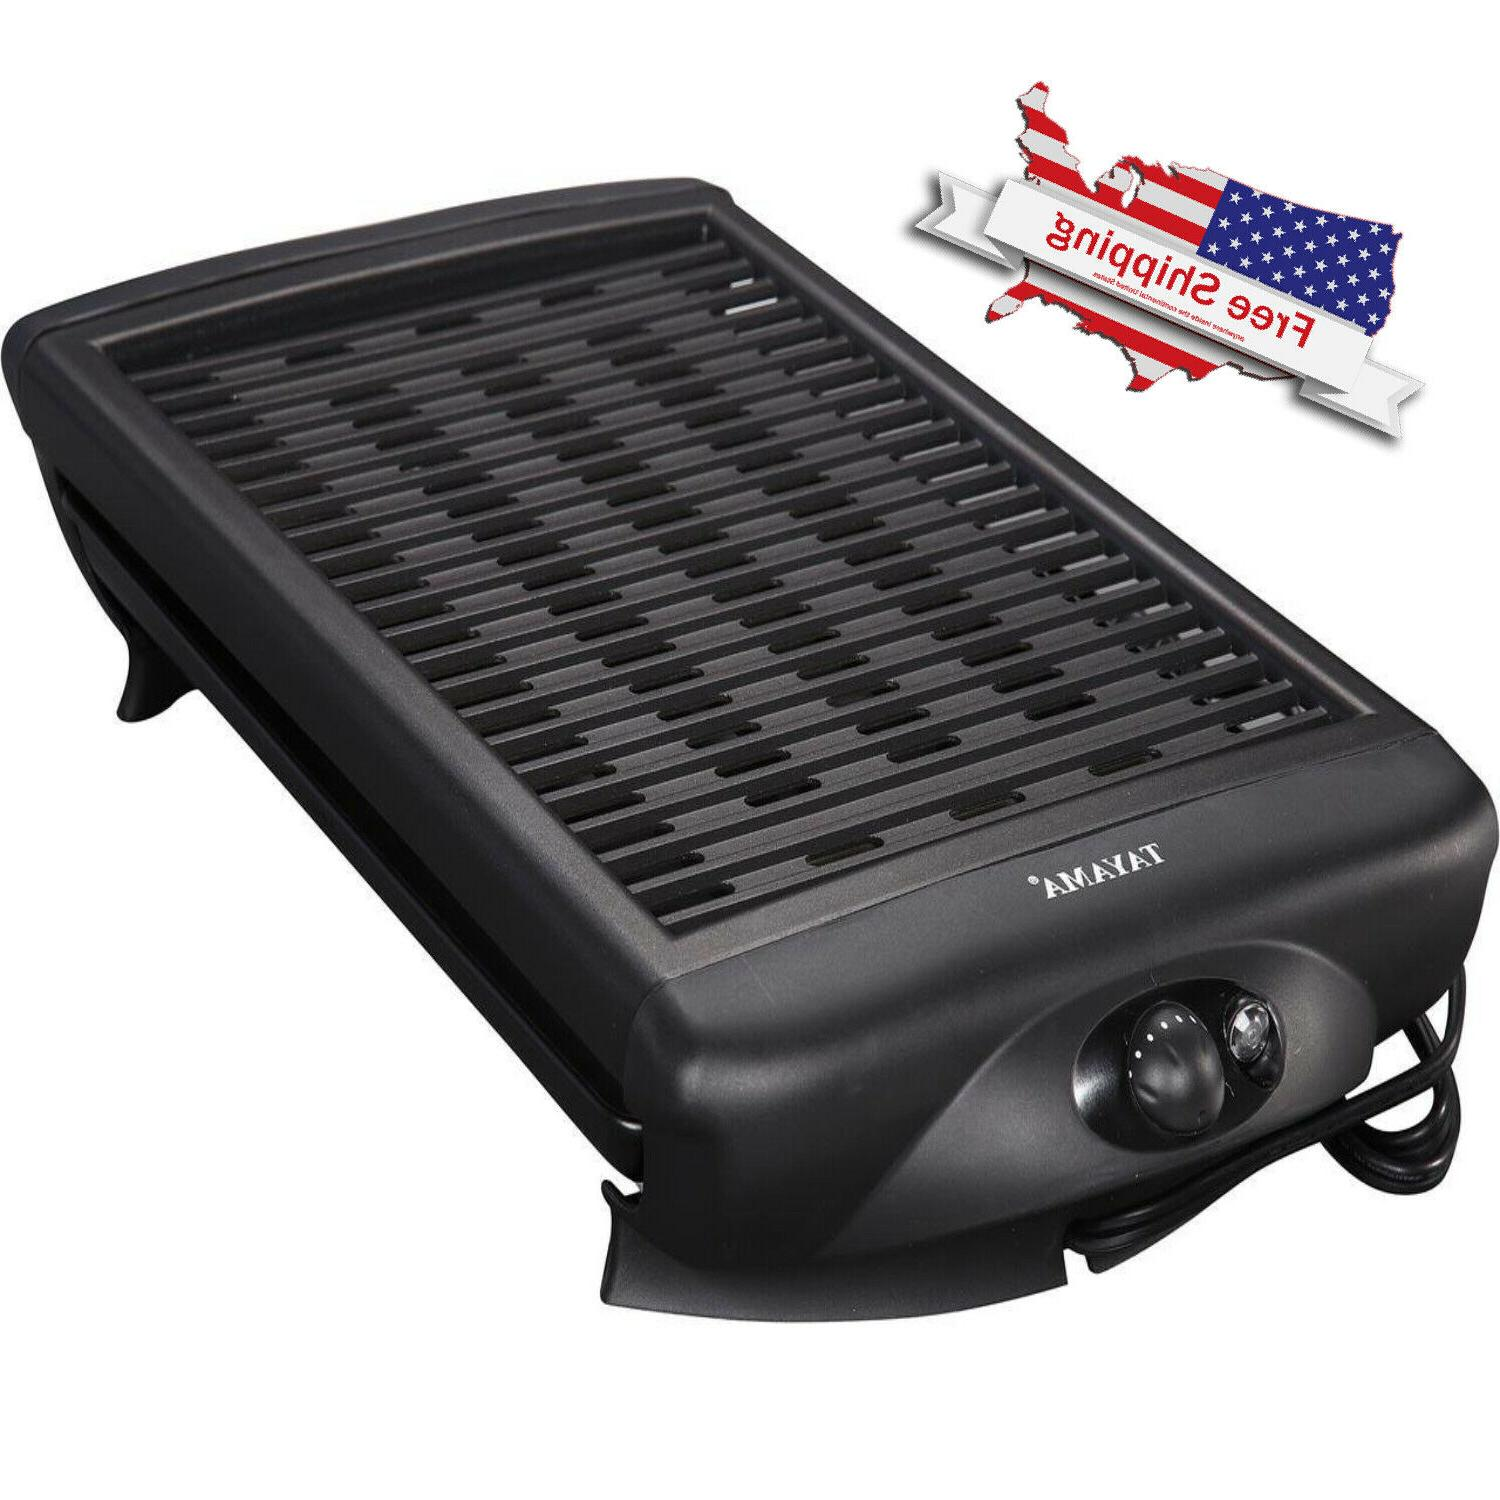 smokeless indoor electric grill non stick bbq